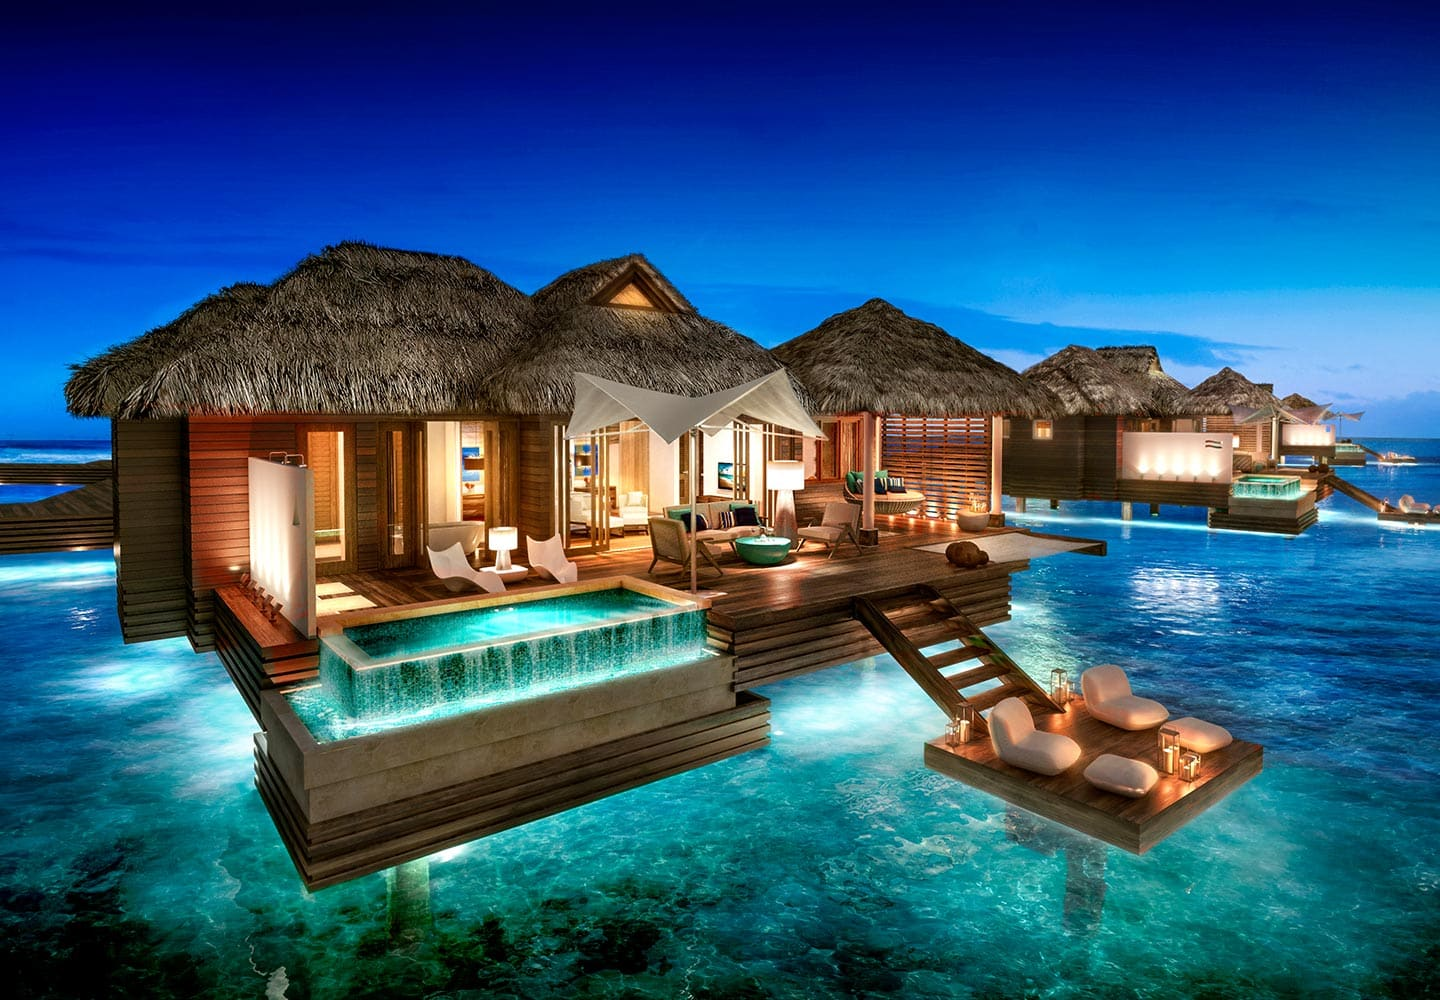 night view of the over-the-water bungalows of the Sandals Royal Caribbean Resort and Private Island, an all inclusive vacation resort